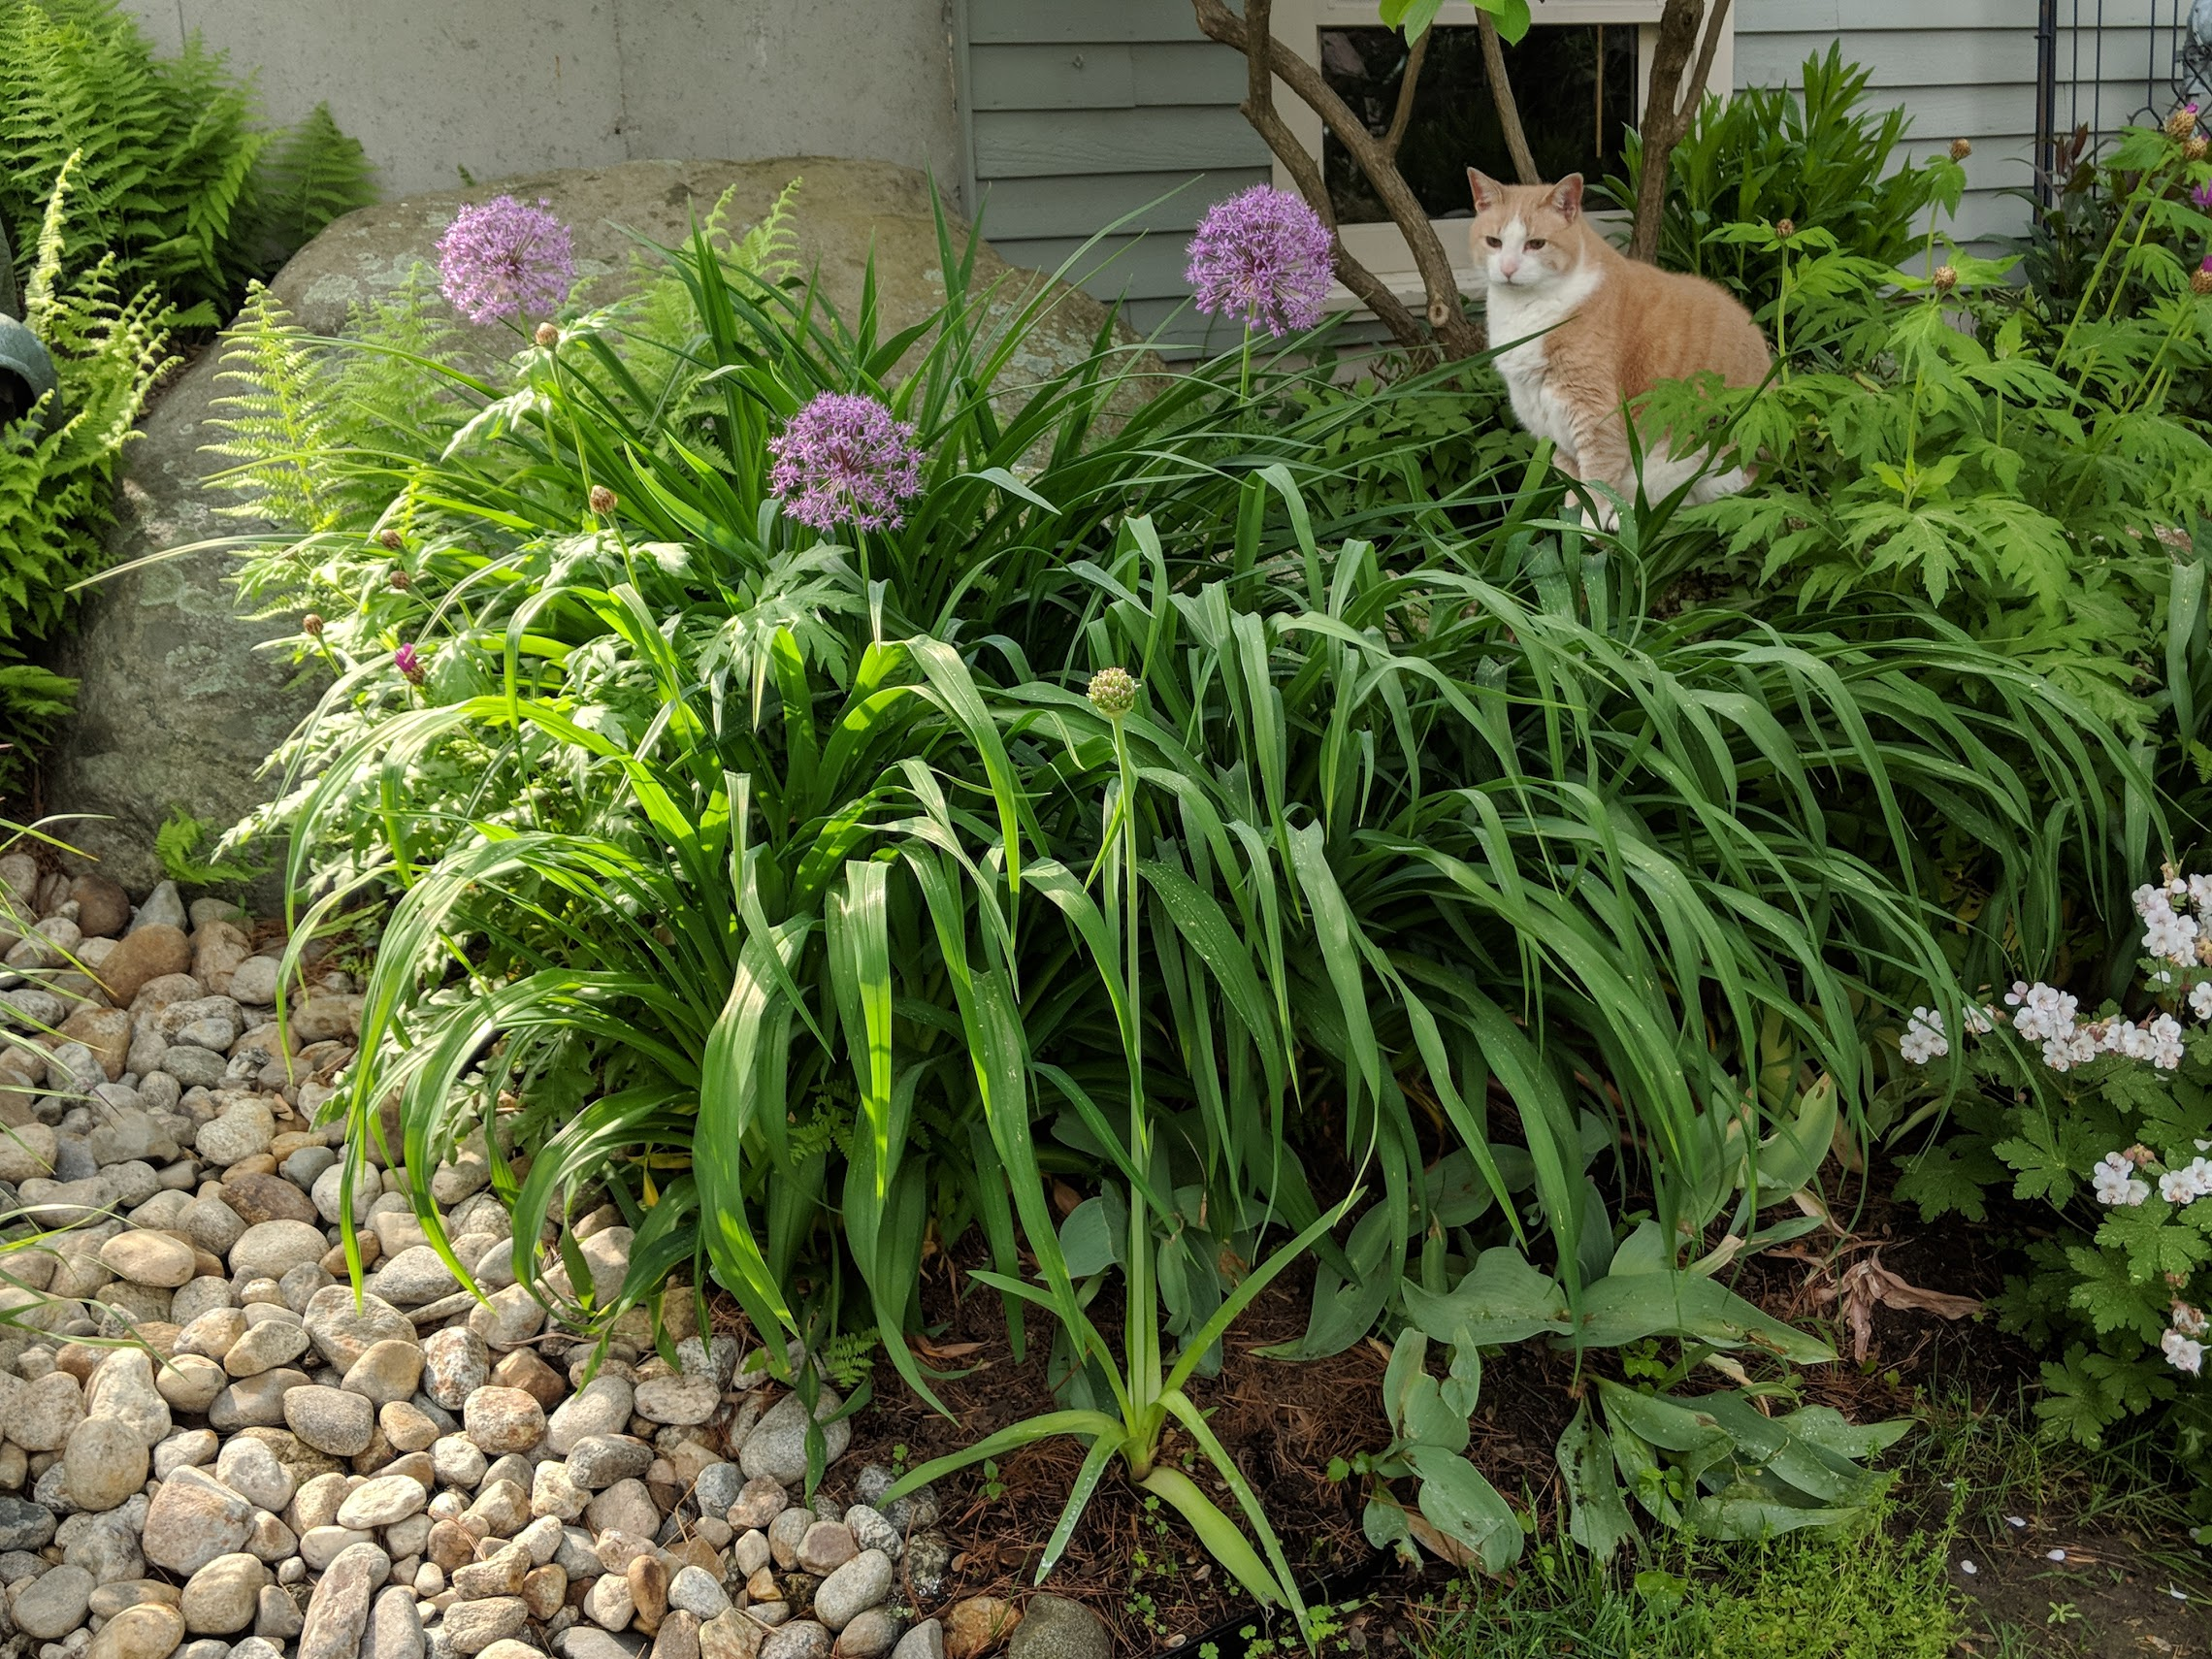 'Miami' allium emerges from daylily foliage. Notice the dying back 'Fur Elise' tulips in front of the lilies.